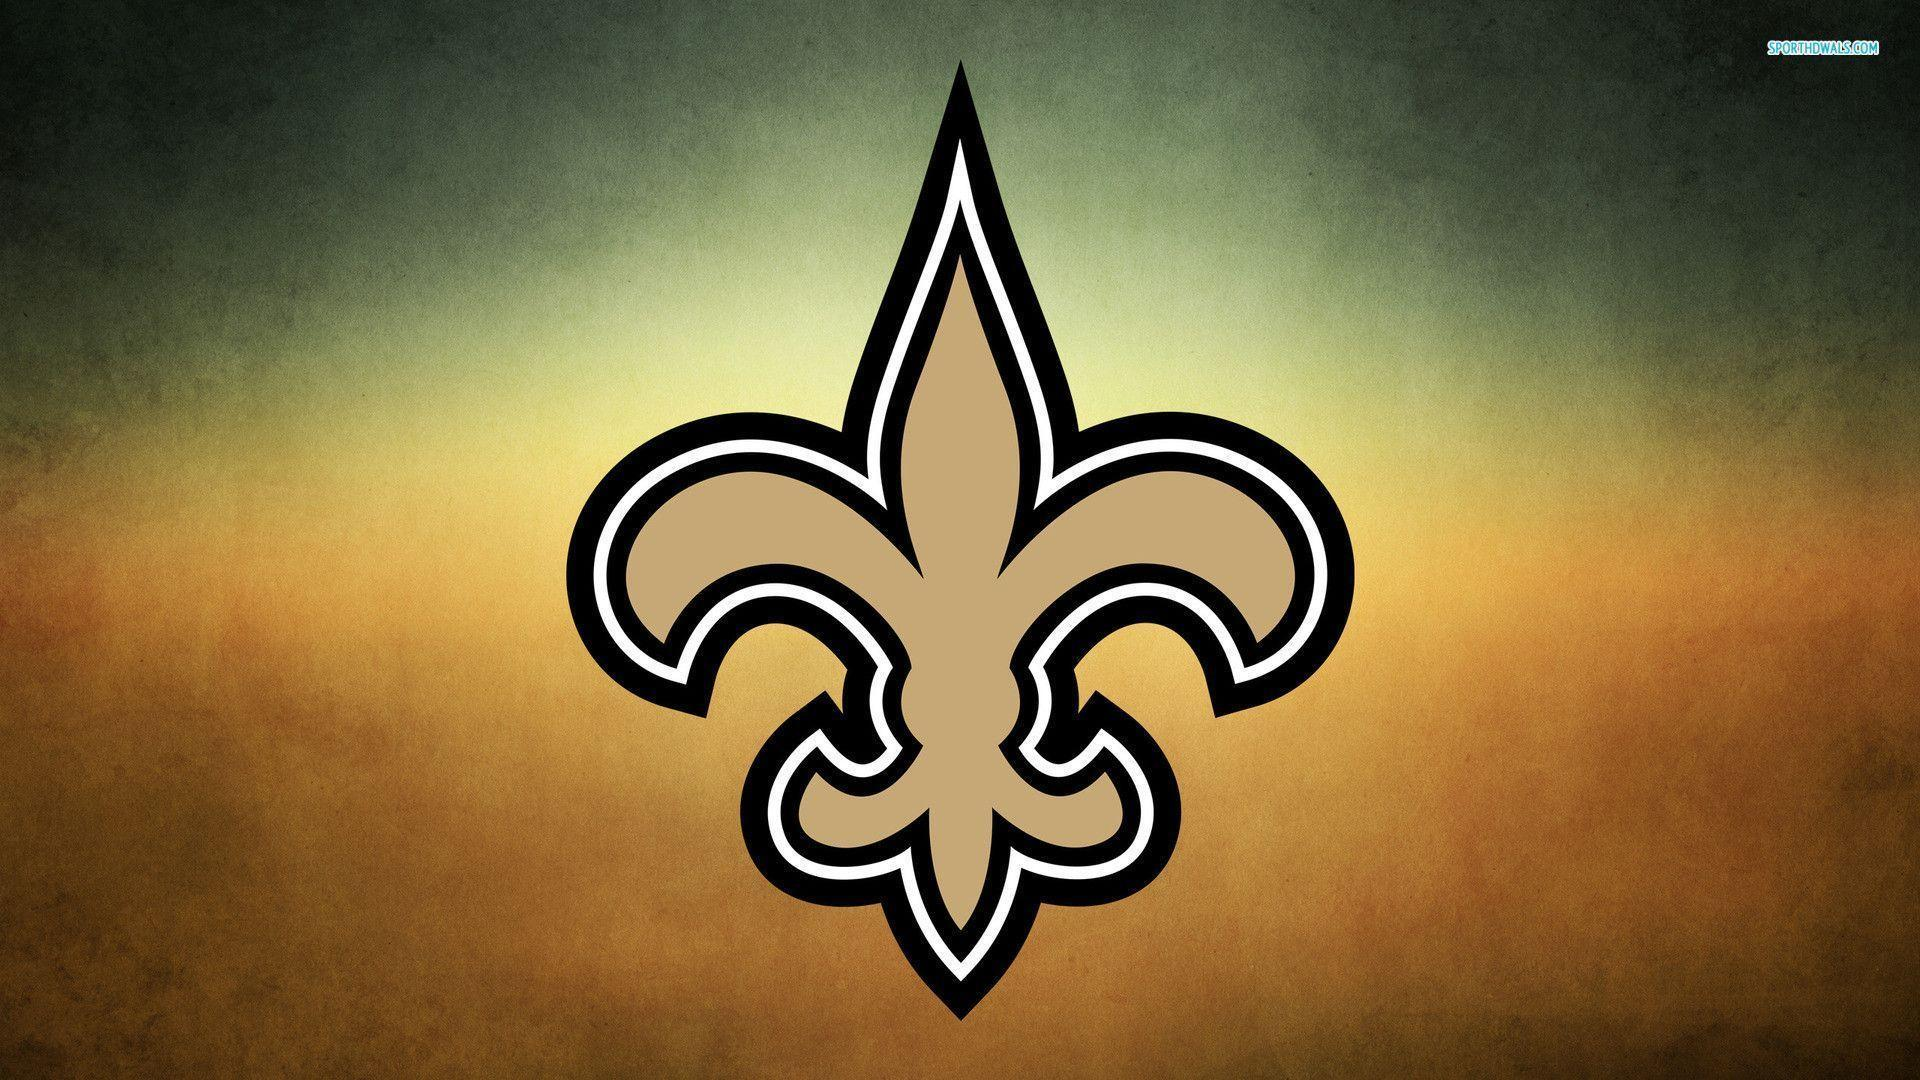 The best New Orleans Saints wallpapers wallpapers ever??